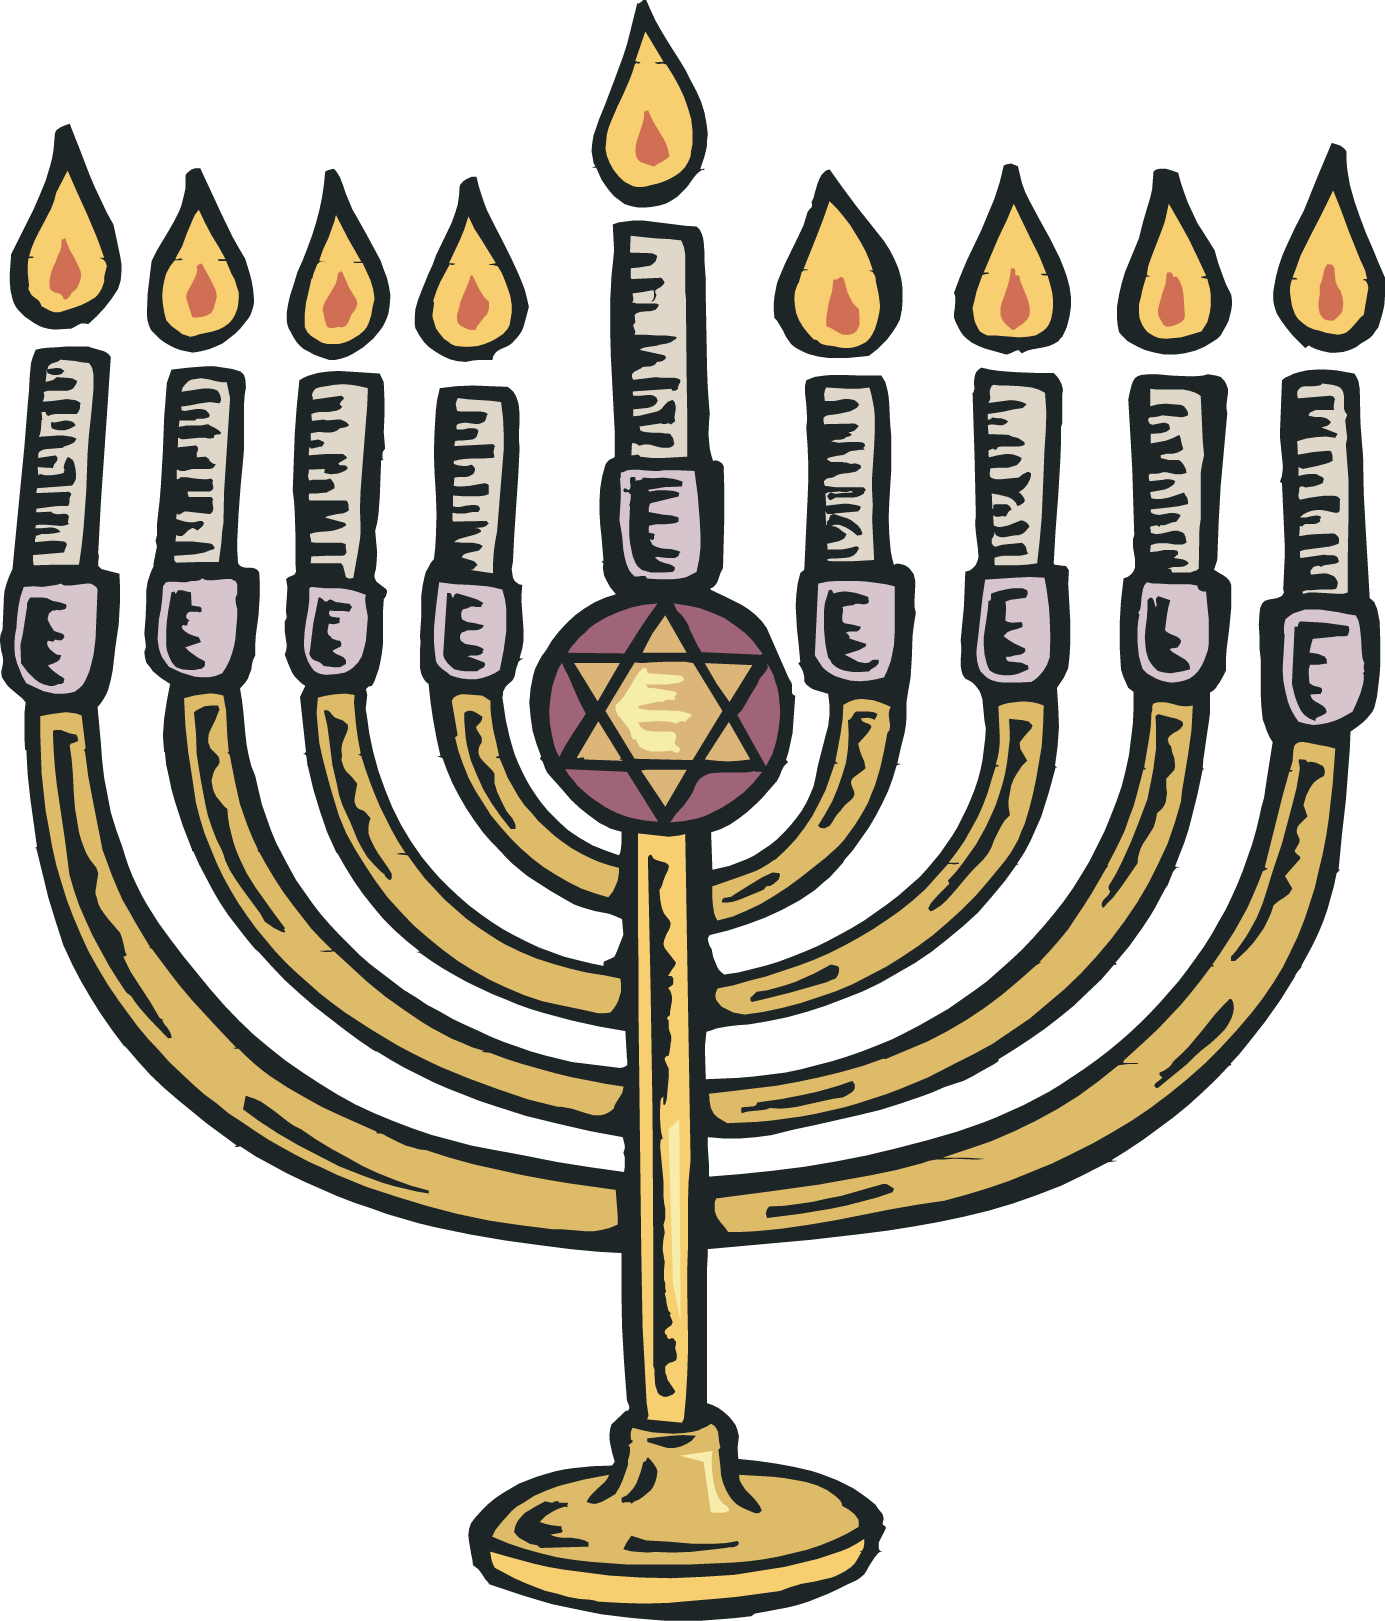 Menorah clipart traditional. Images group picture of